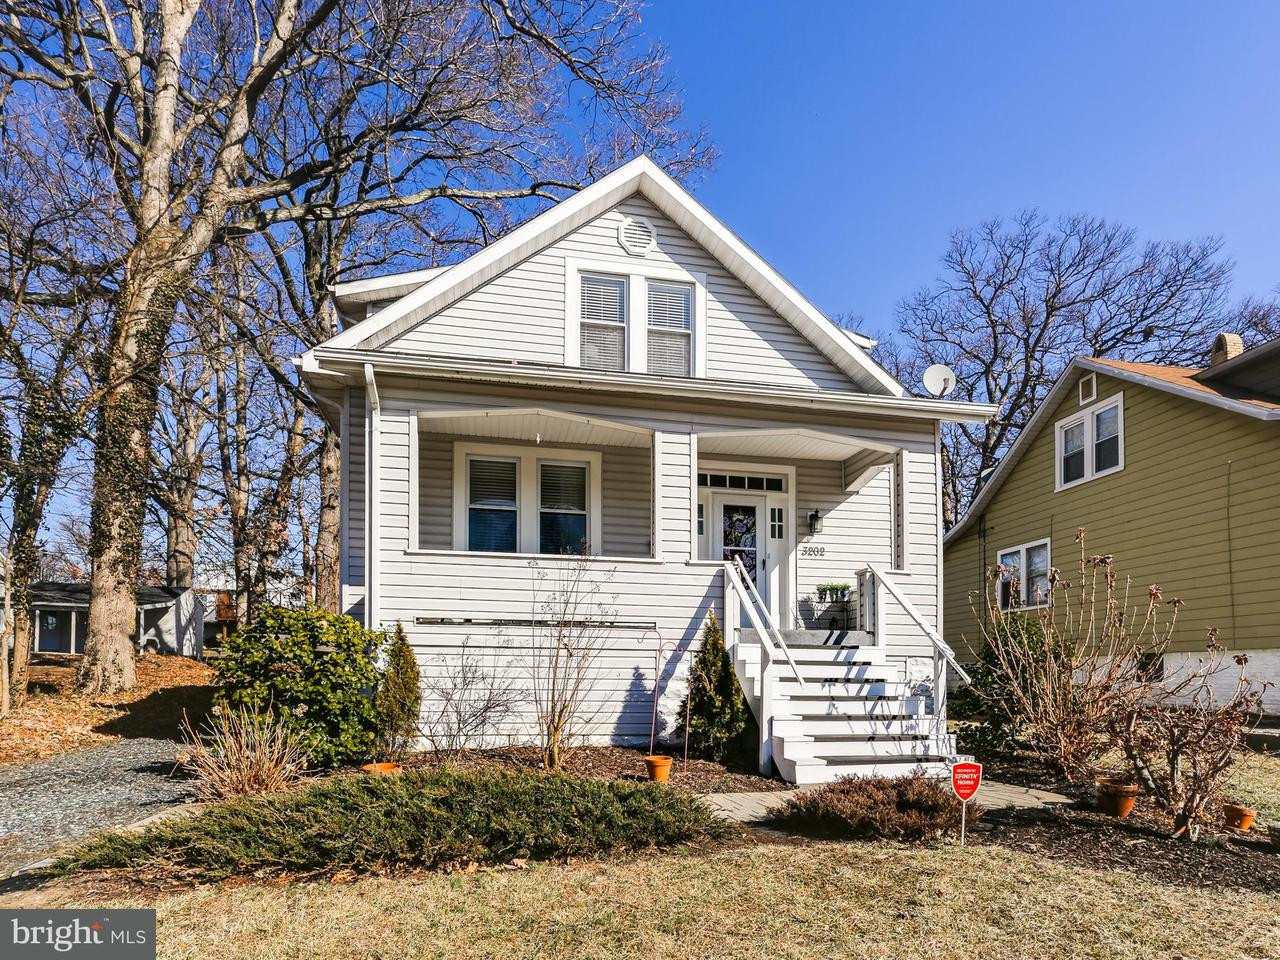 Single Family for Sale at 3202 Orlando Ave Baltimore, Maryland 21234 United States